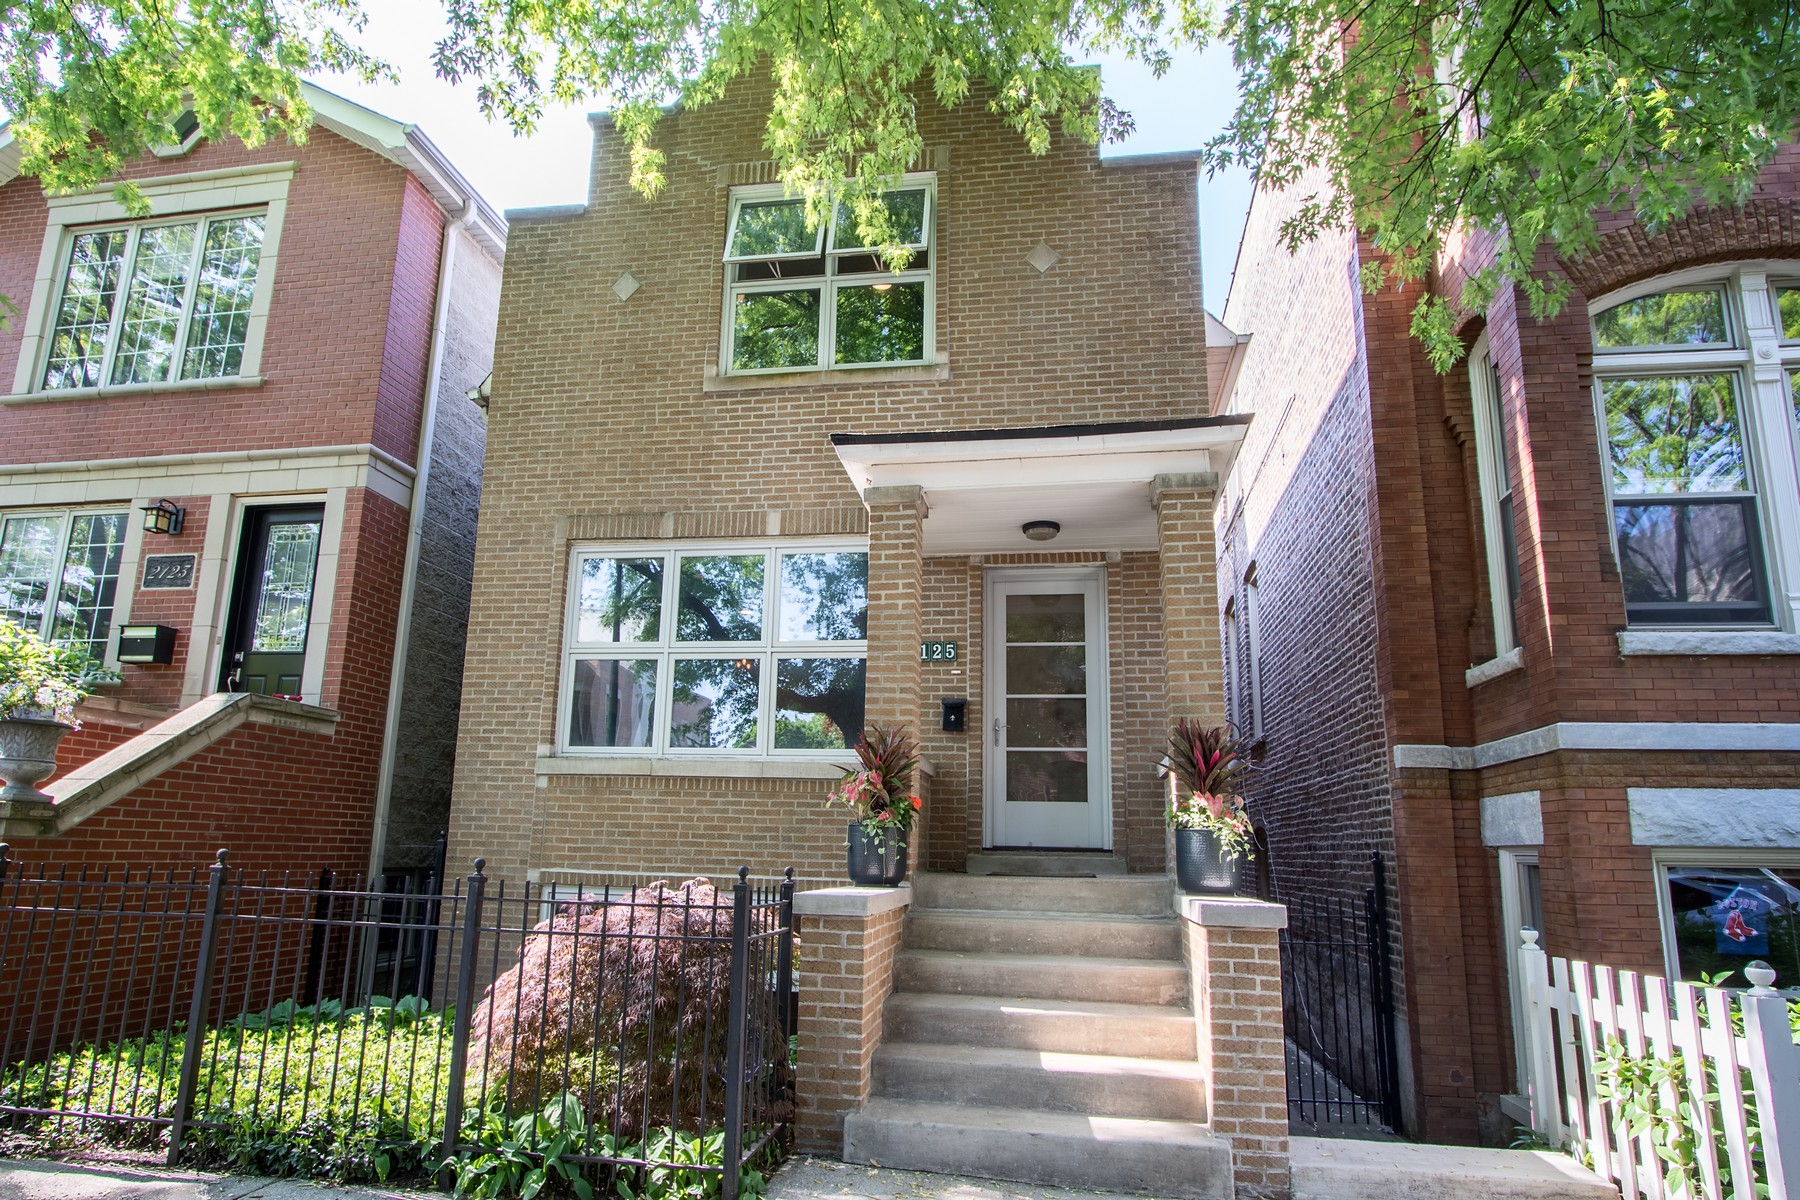 Single Family Home for Sale at Bright and Beautiful Brick Home in Bucktown 2125 W Moffat Street Logan Square, Chicago, Illinois, 60647 United States